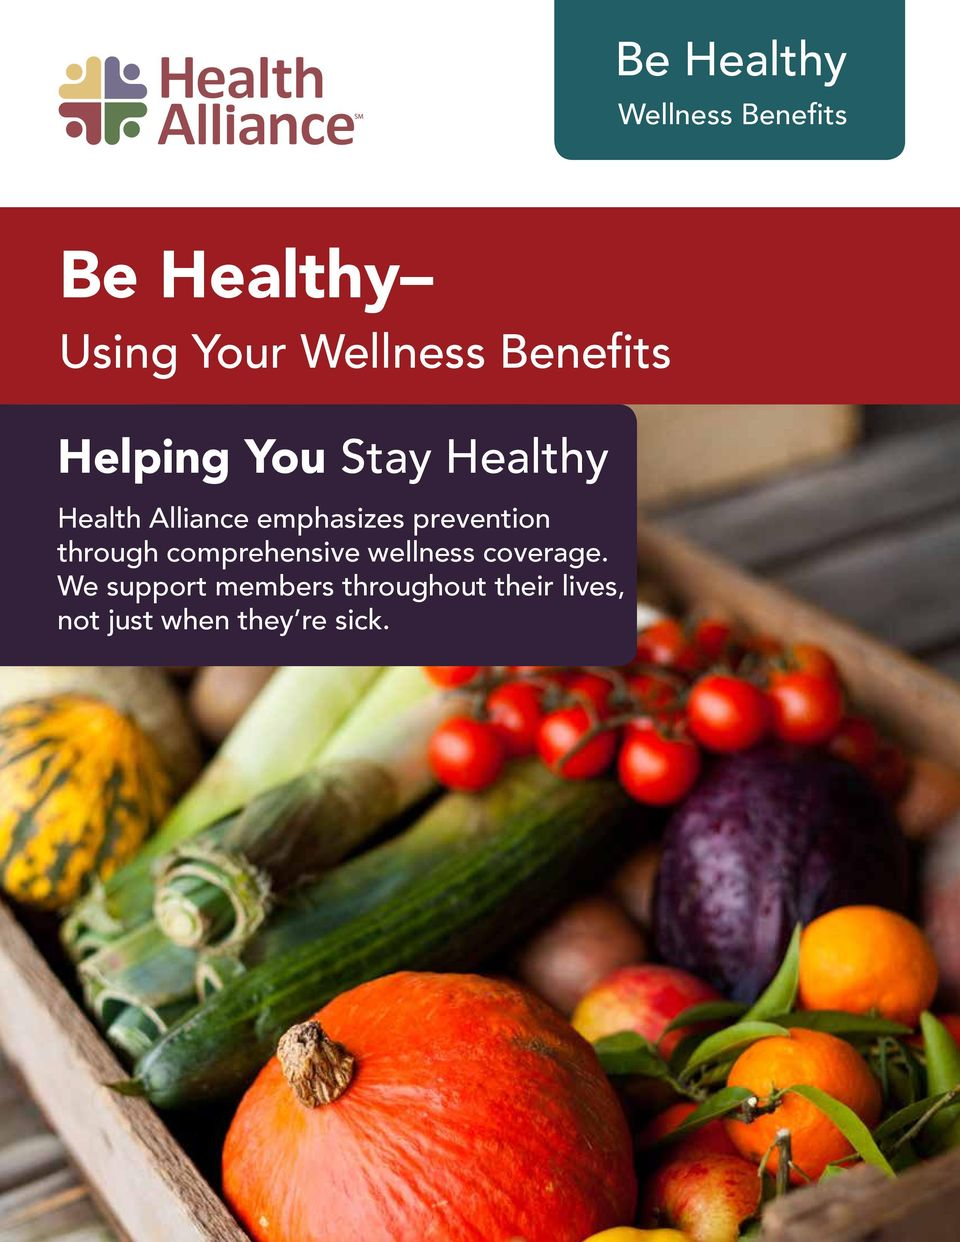 prevention through comprehensive wellness coverage.